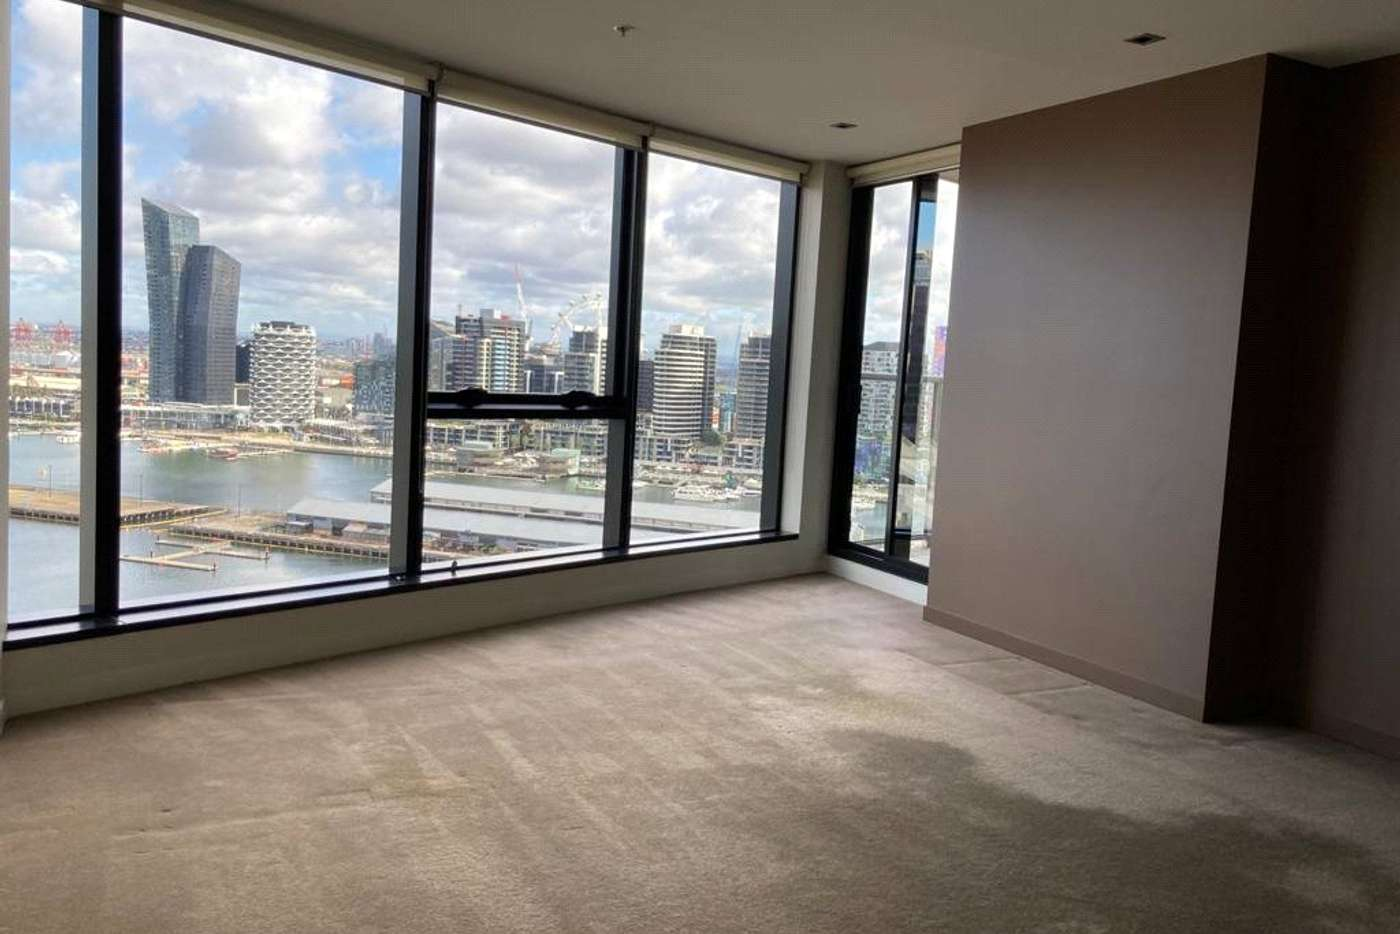 Main view of Homely apartment listing, 2102/100 Harbour Esplanade, Docklands VIC 3008